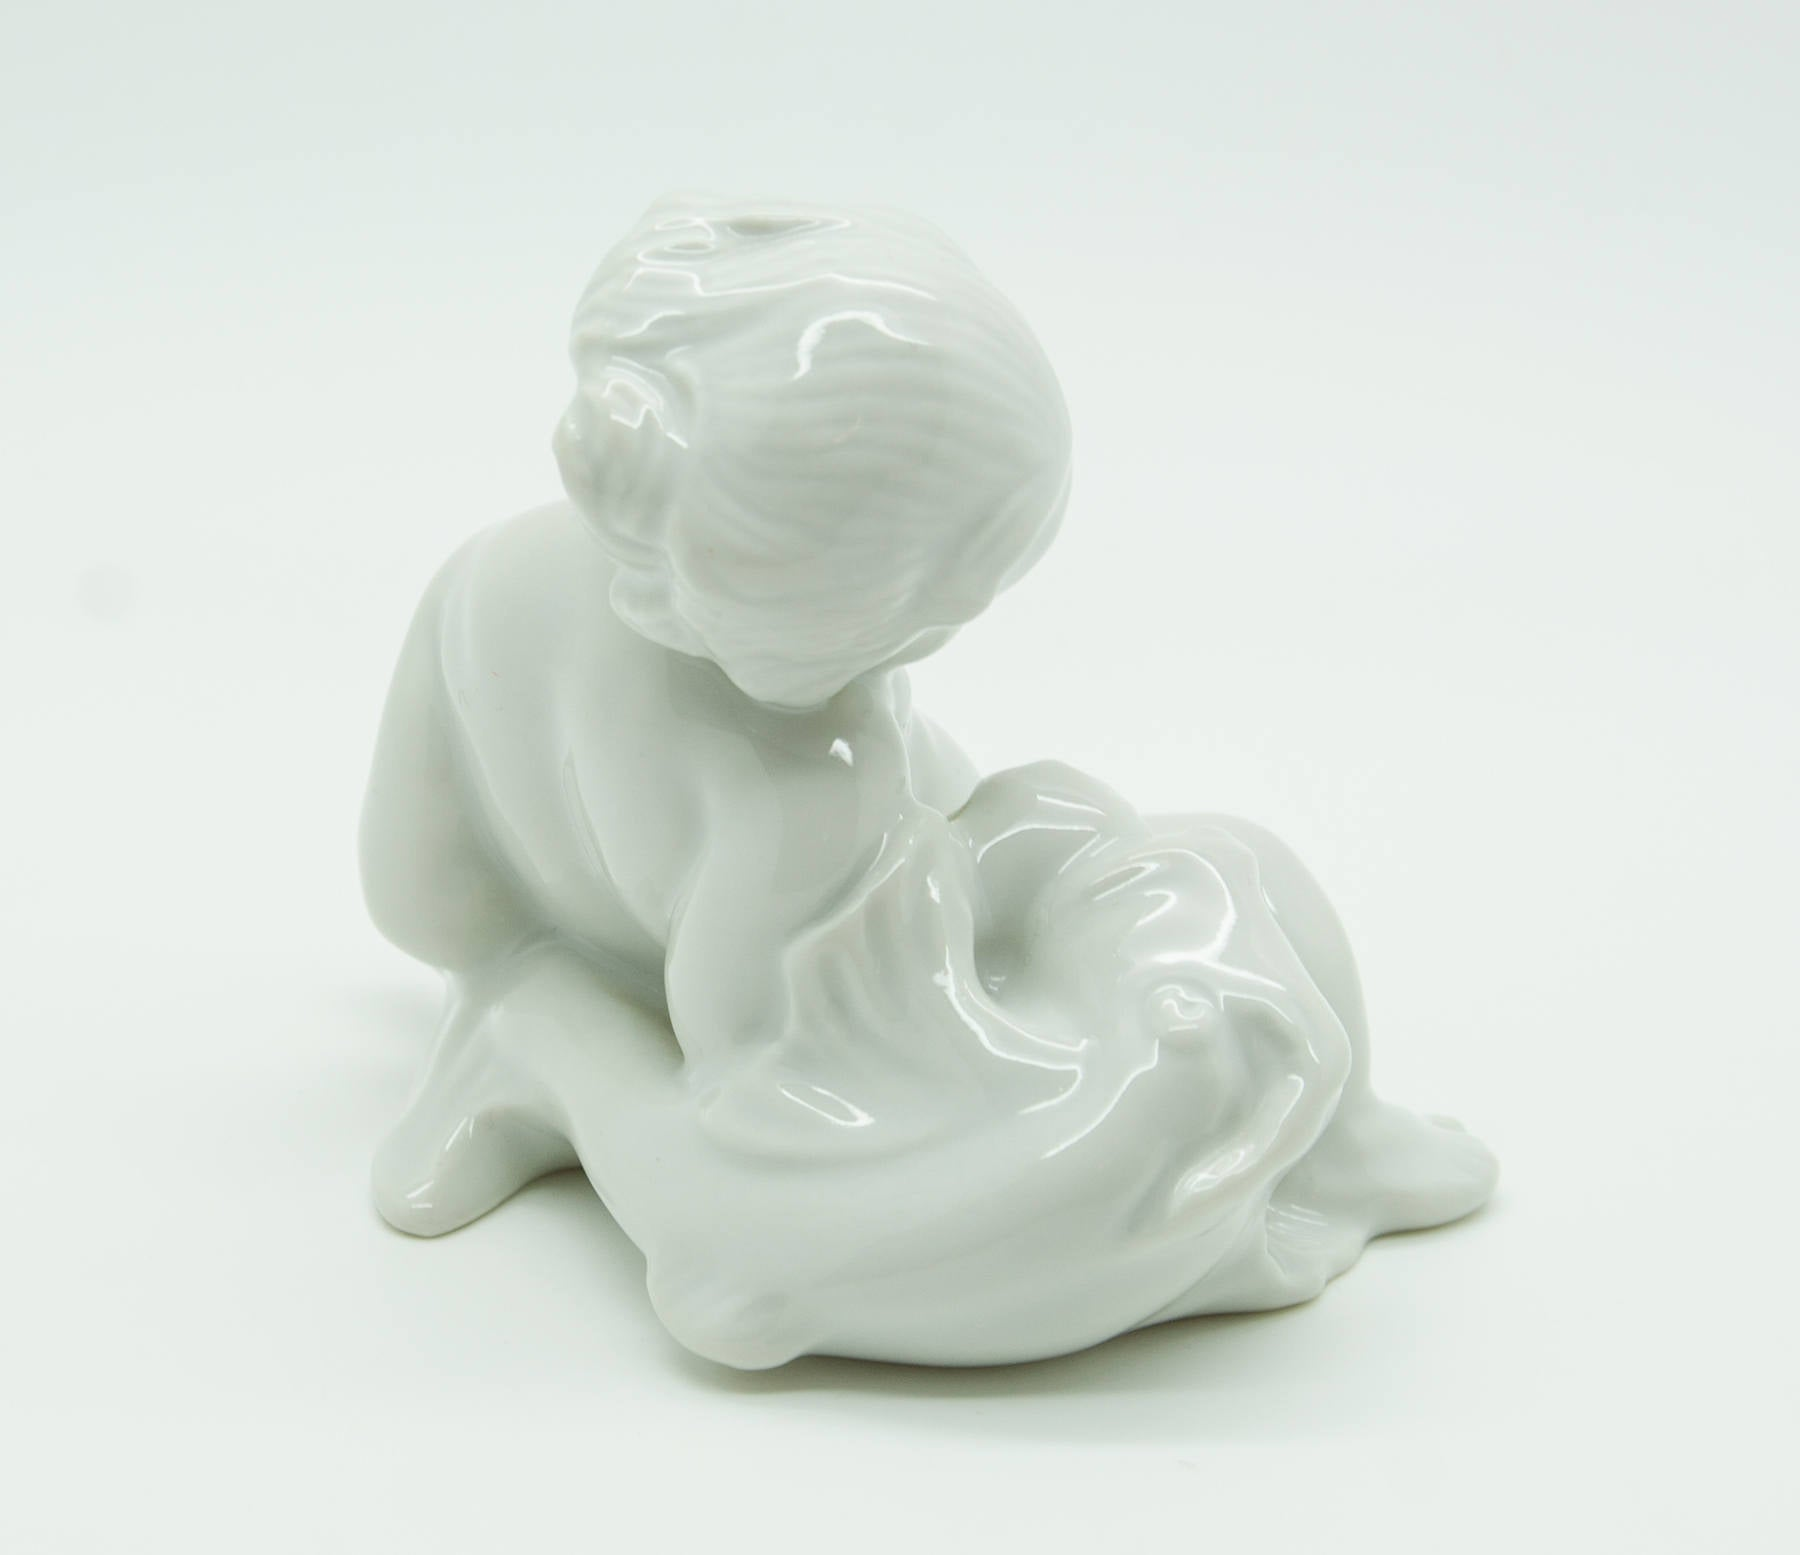 KAI NIELSEN Bing & Grøndahl Sea Child with Fish Porcelain Figurine - Mollaris.com